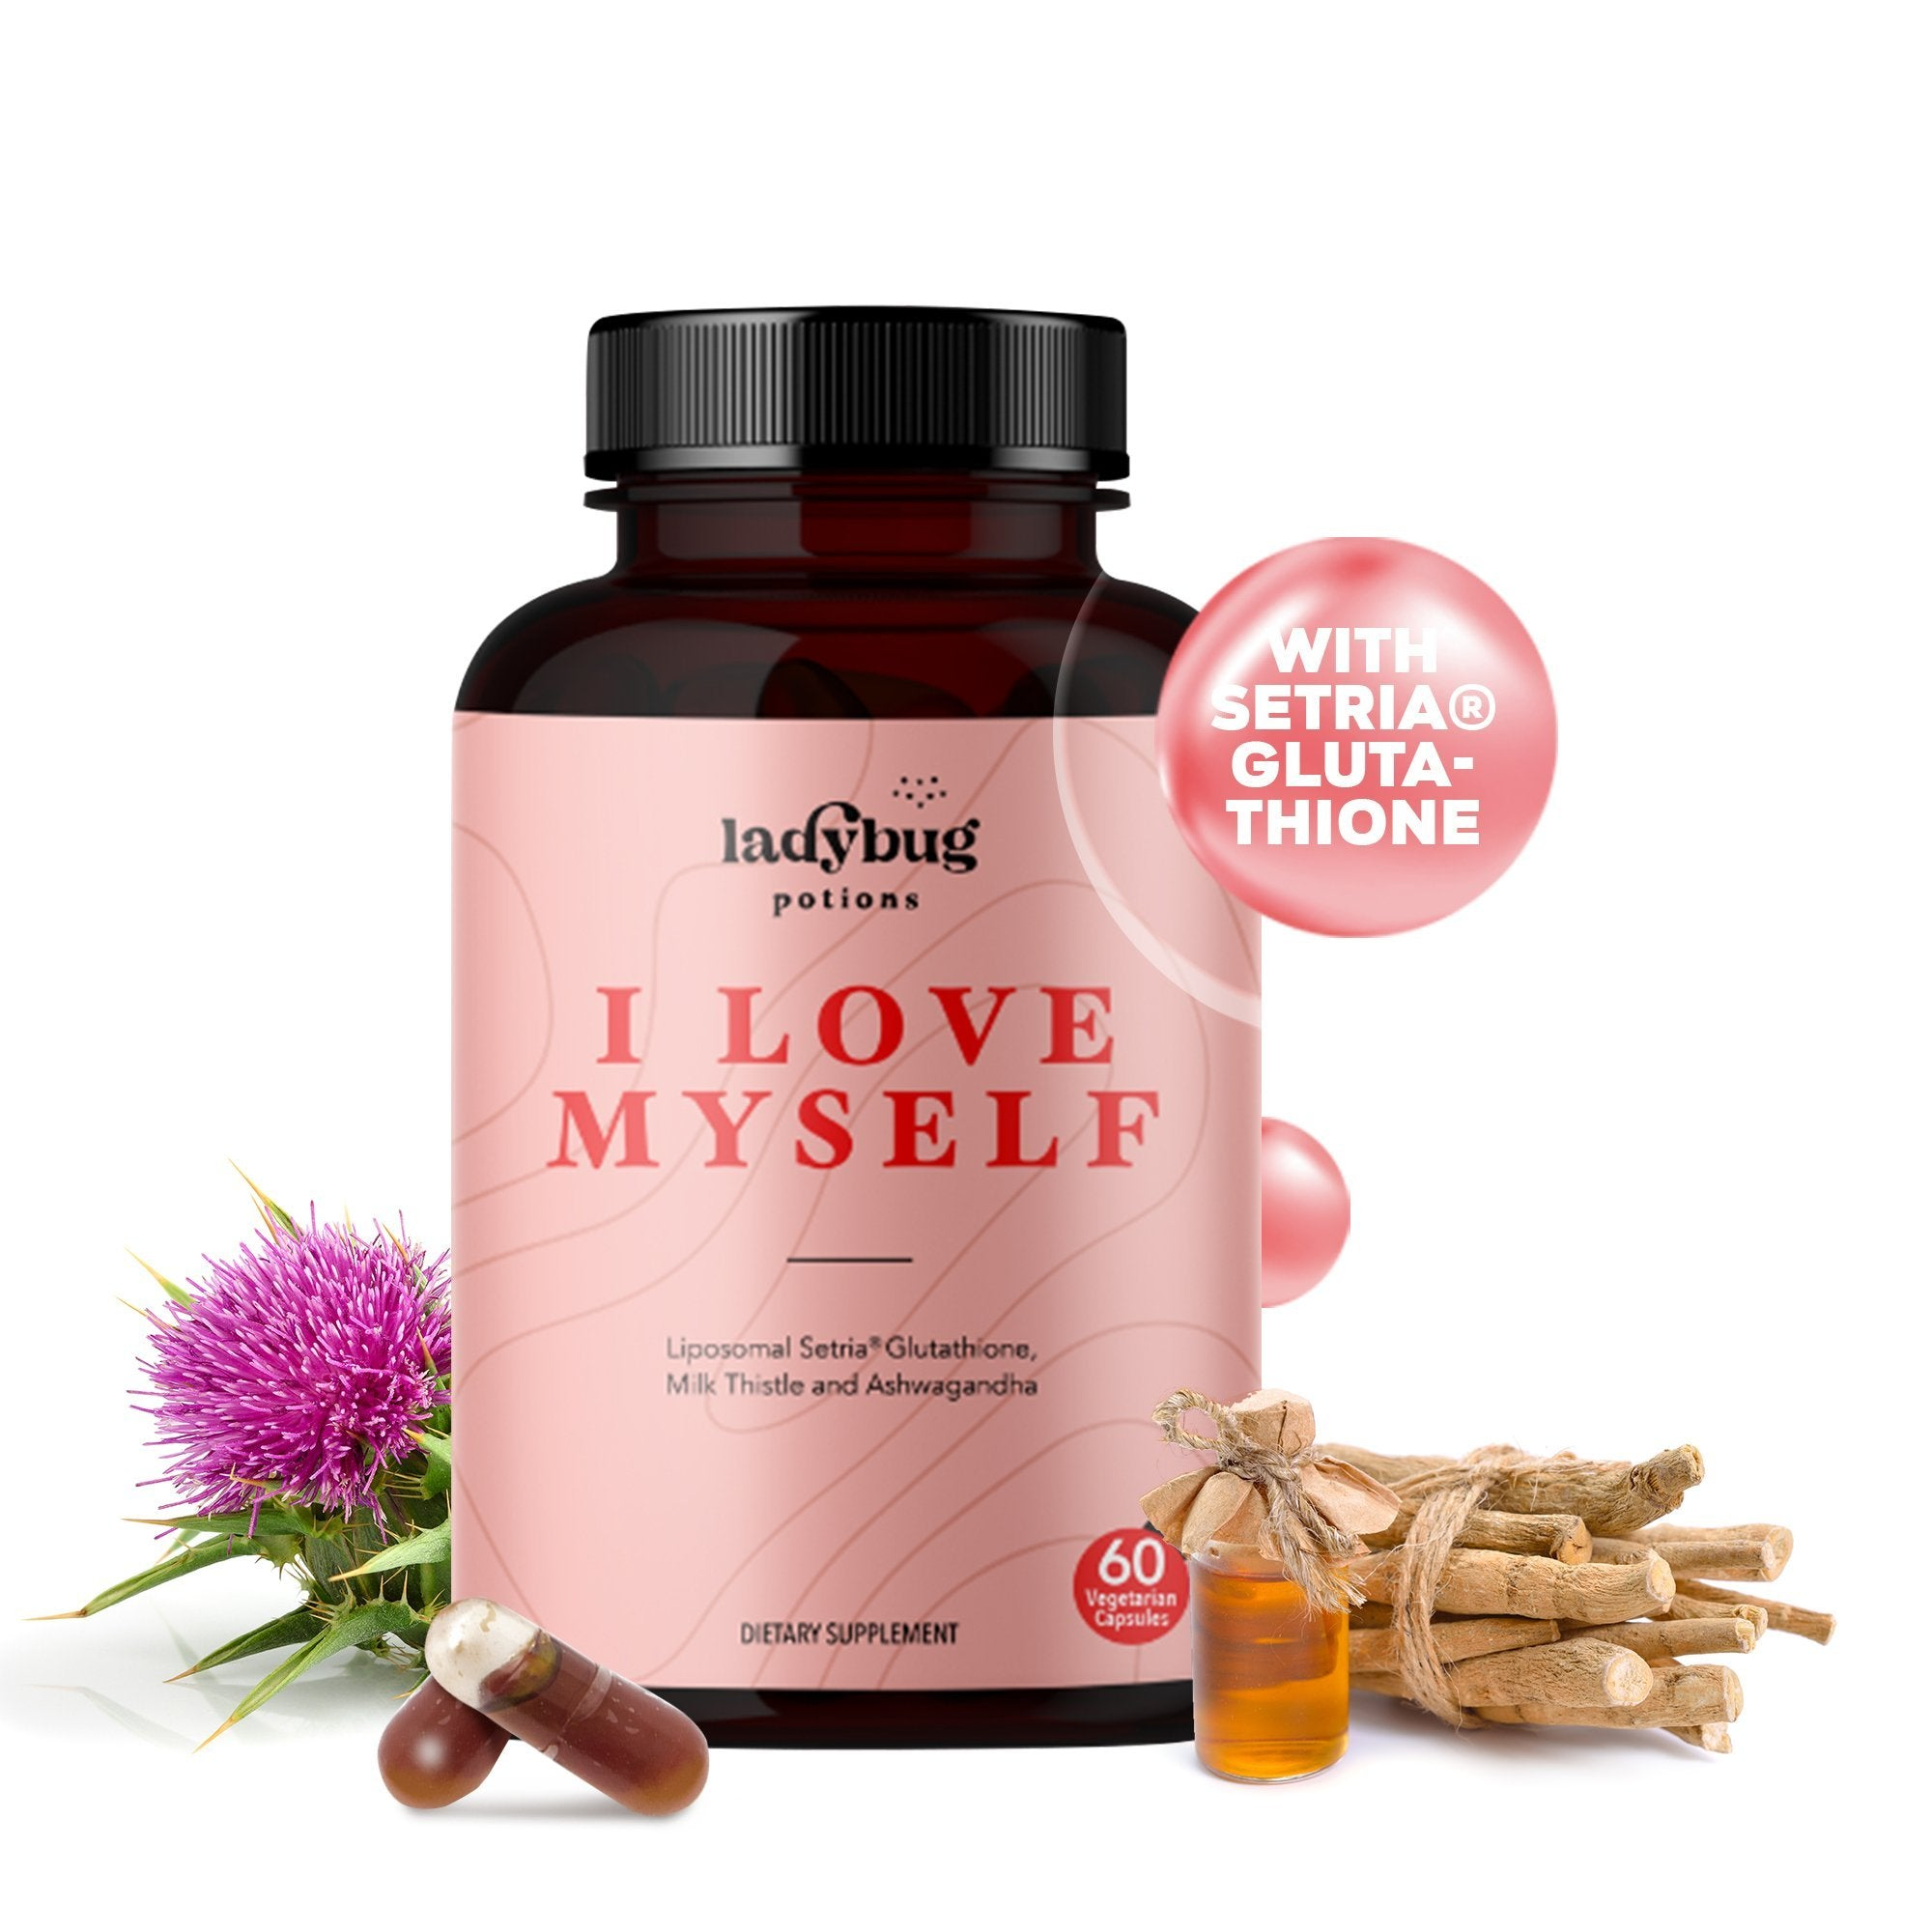 Ladybug Potions® I Love Myself - Glutathione, Ashwagandha, & Milk Thistle